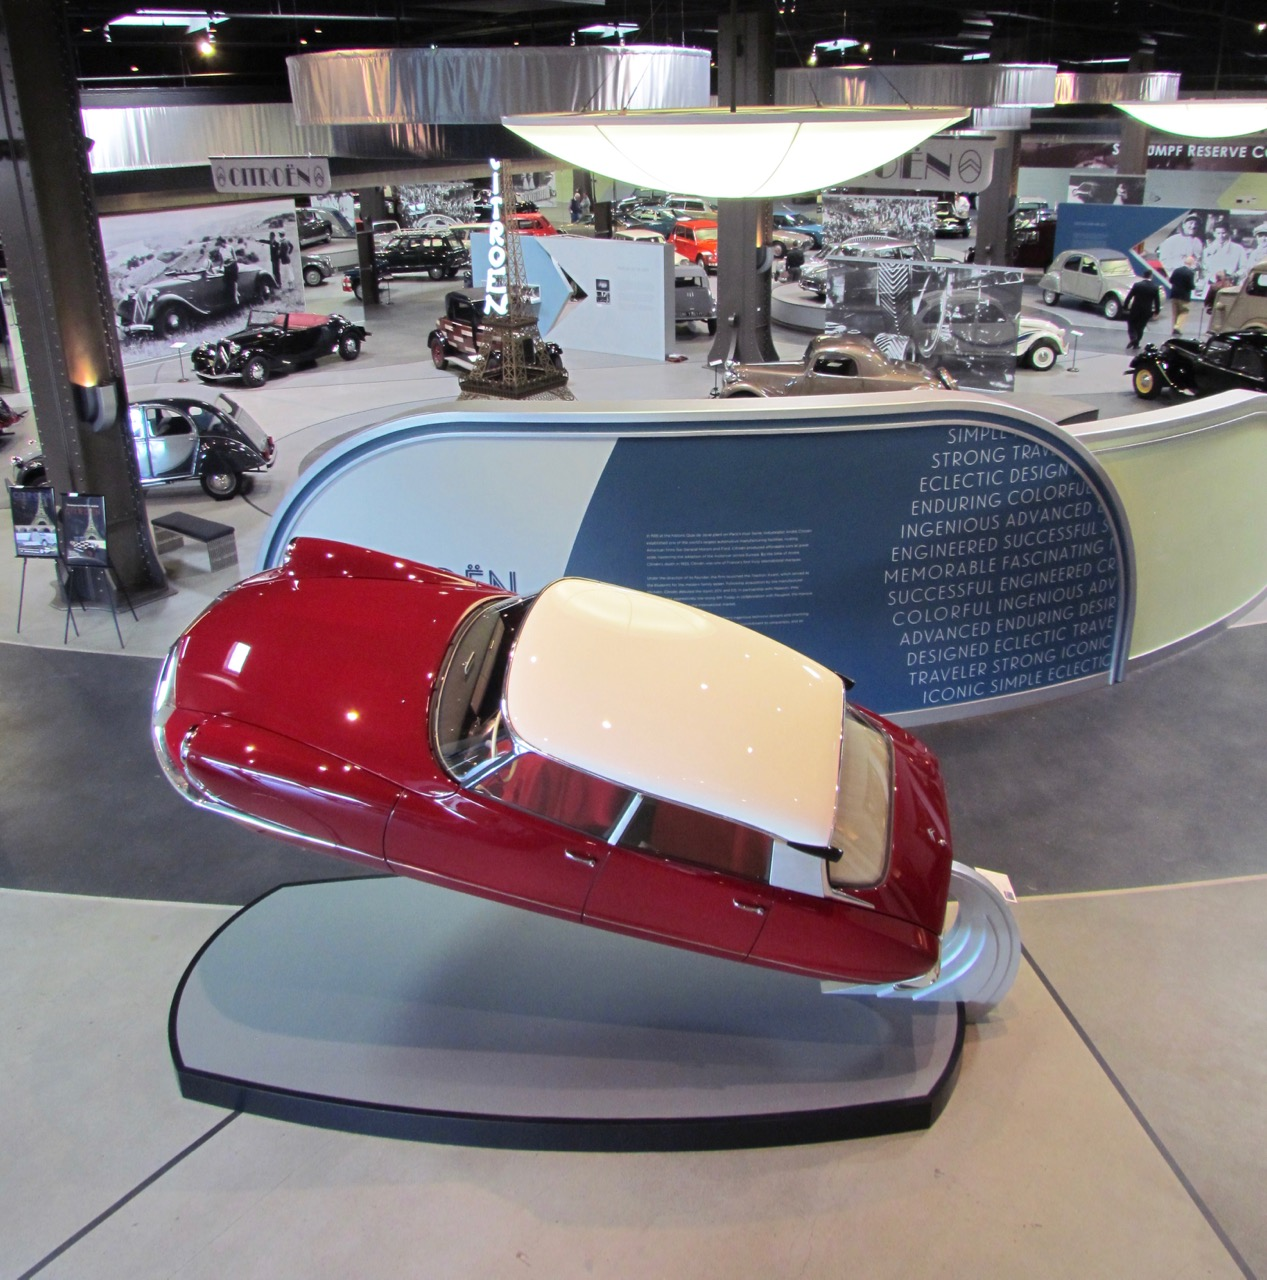 1967 Citroen ID19 'Rocket' greets visitors. The display is a tribute to a Citroen's car sculpture unveiled at Turin in 1957